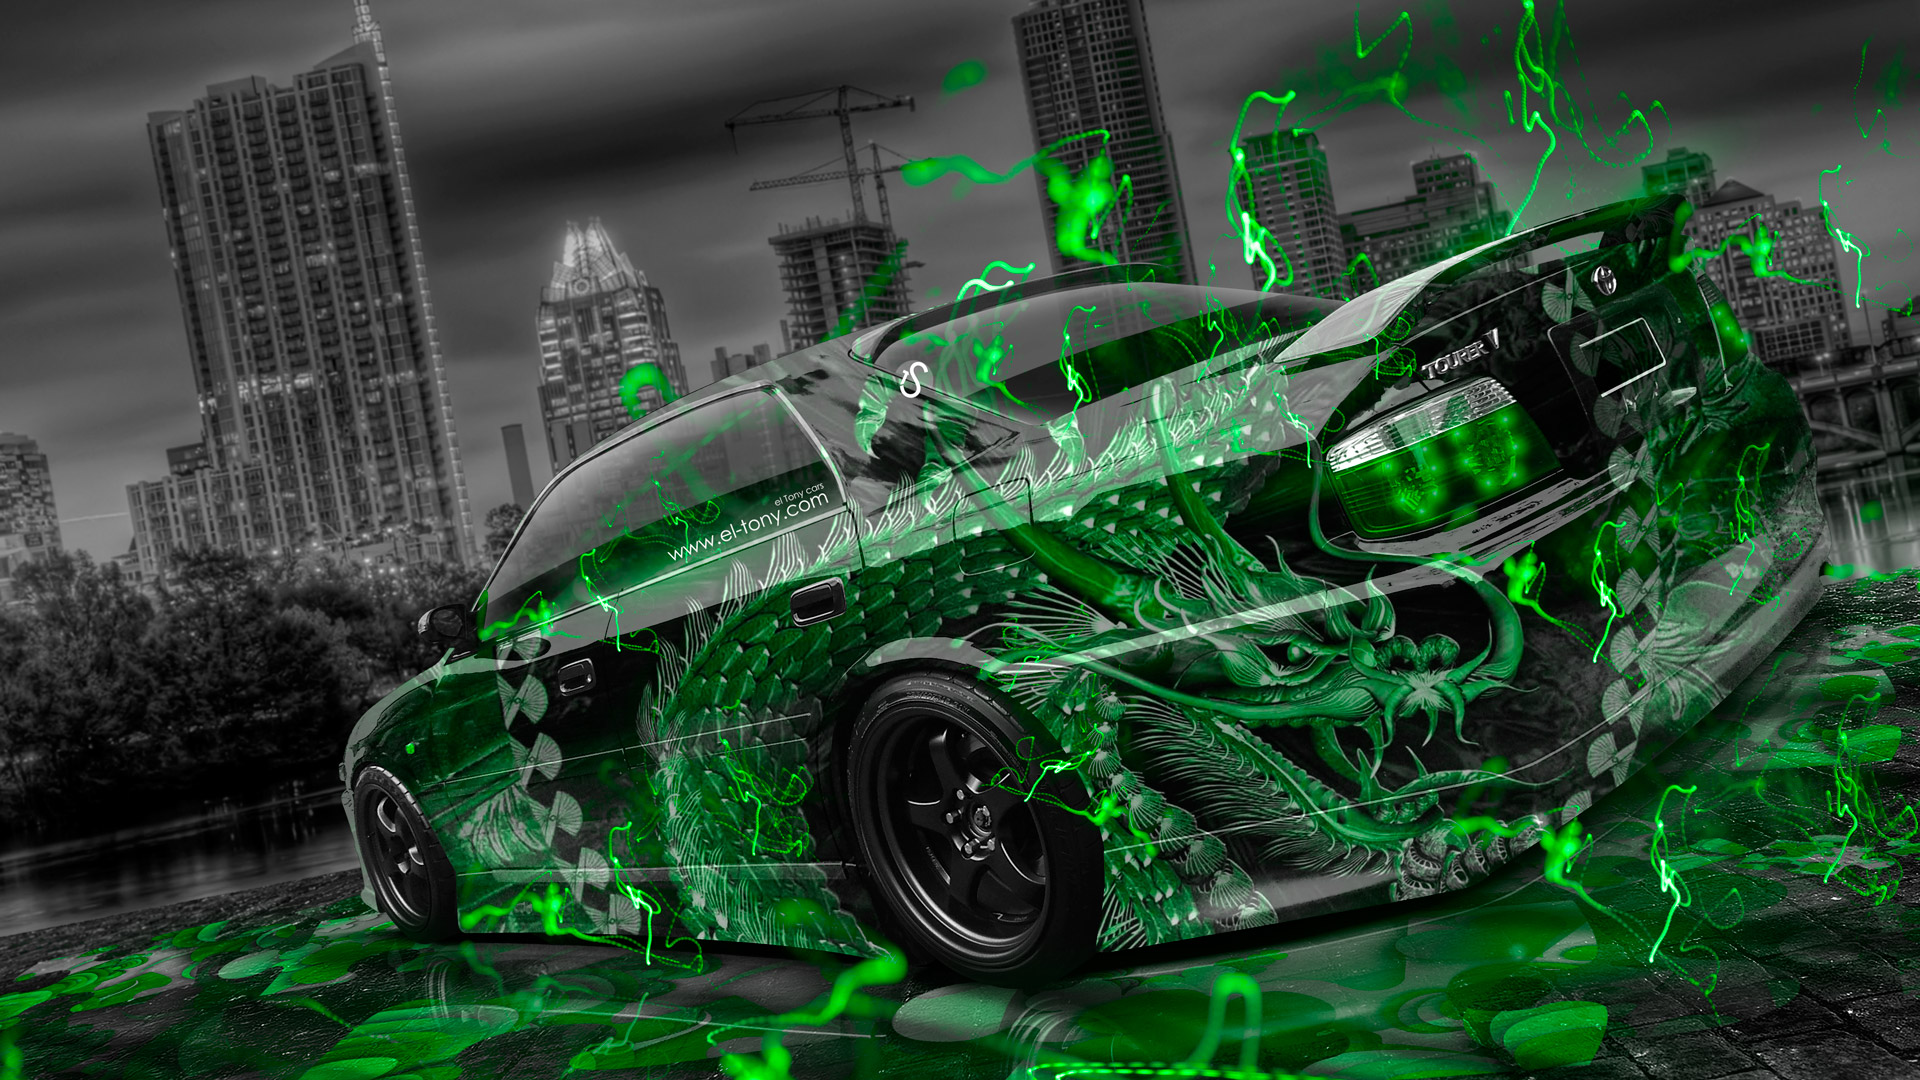 Toyota Chaser JZX100 TourerV JDM Tuning Dragon Aerography City Car 2015 Green Neon Effects HD Wallpapers Design By Tony Kokhan El